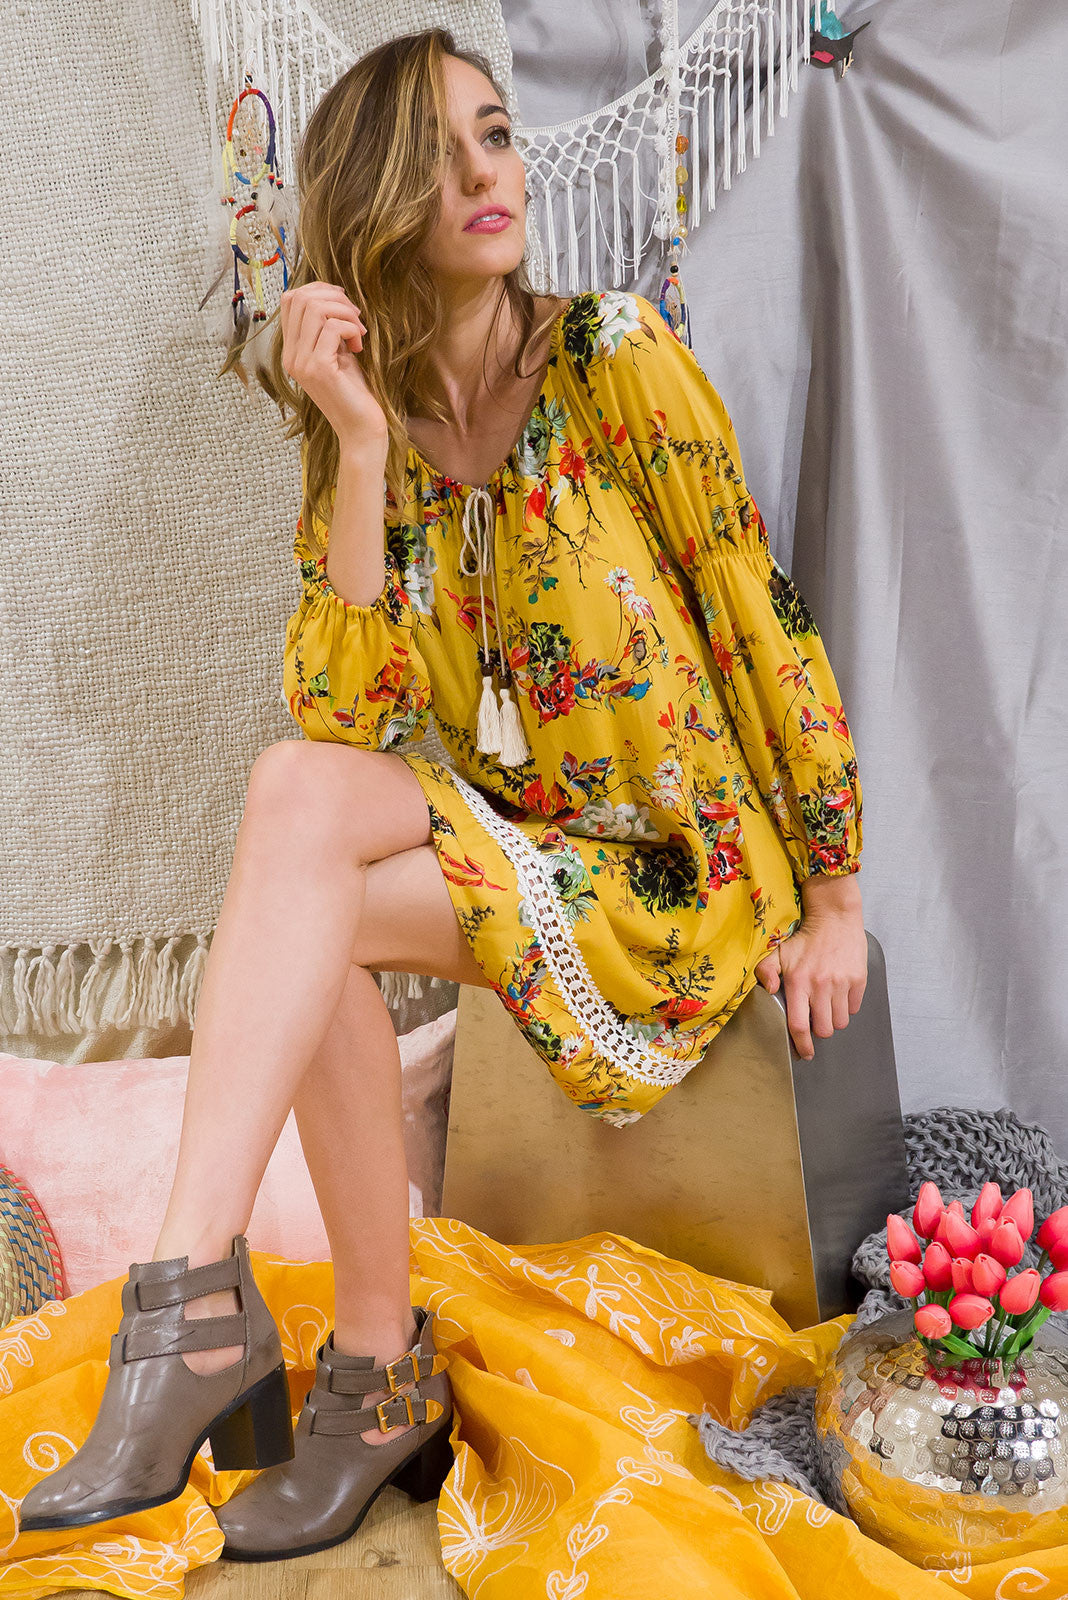 Butterscotch Gold Dress, Yellow floral print tunic dress, Angie dress, boho style dress